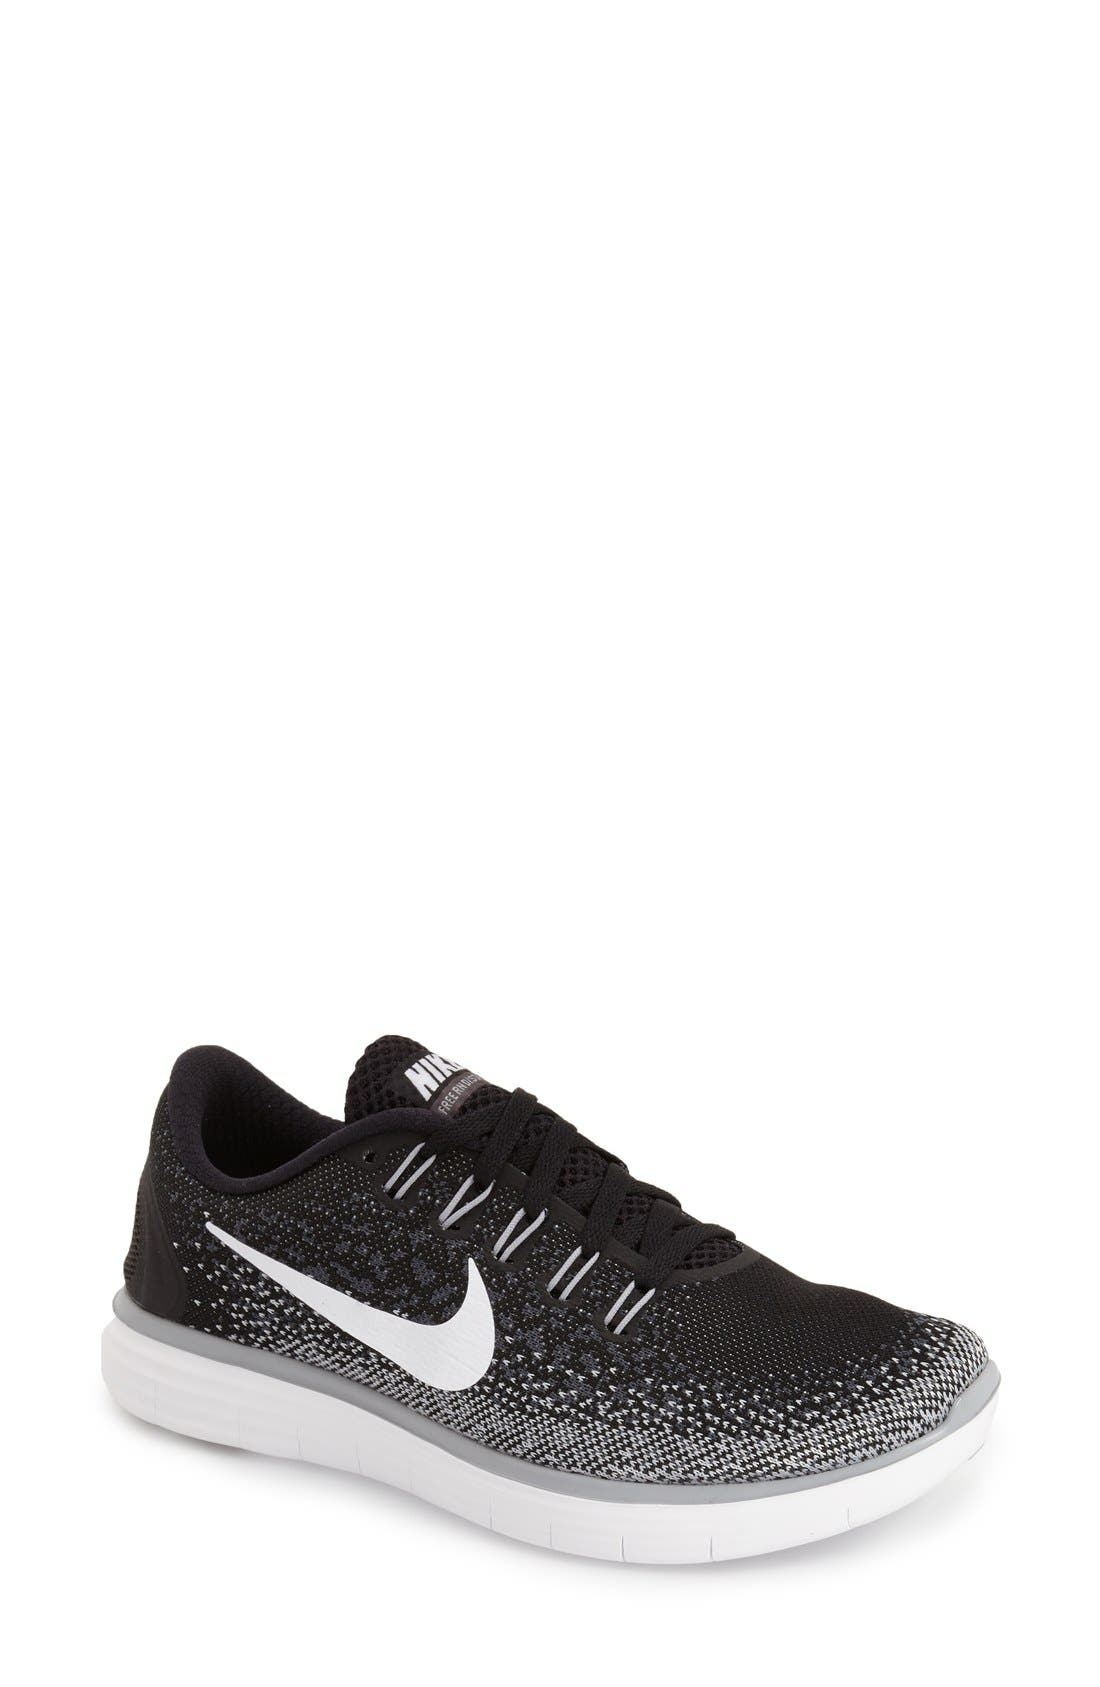 nike free run nordstrom sale shoes